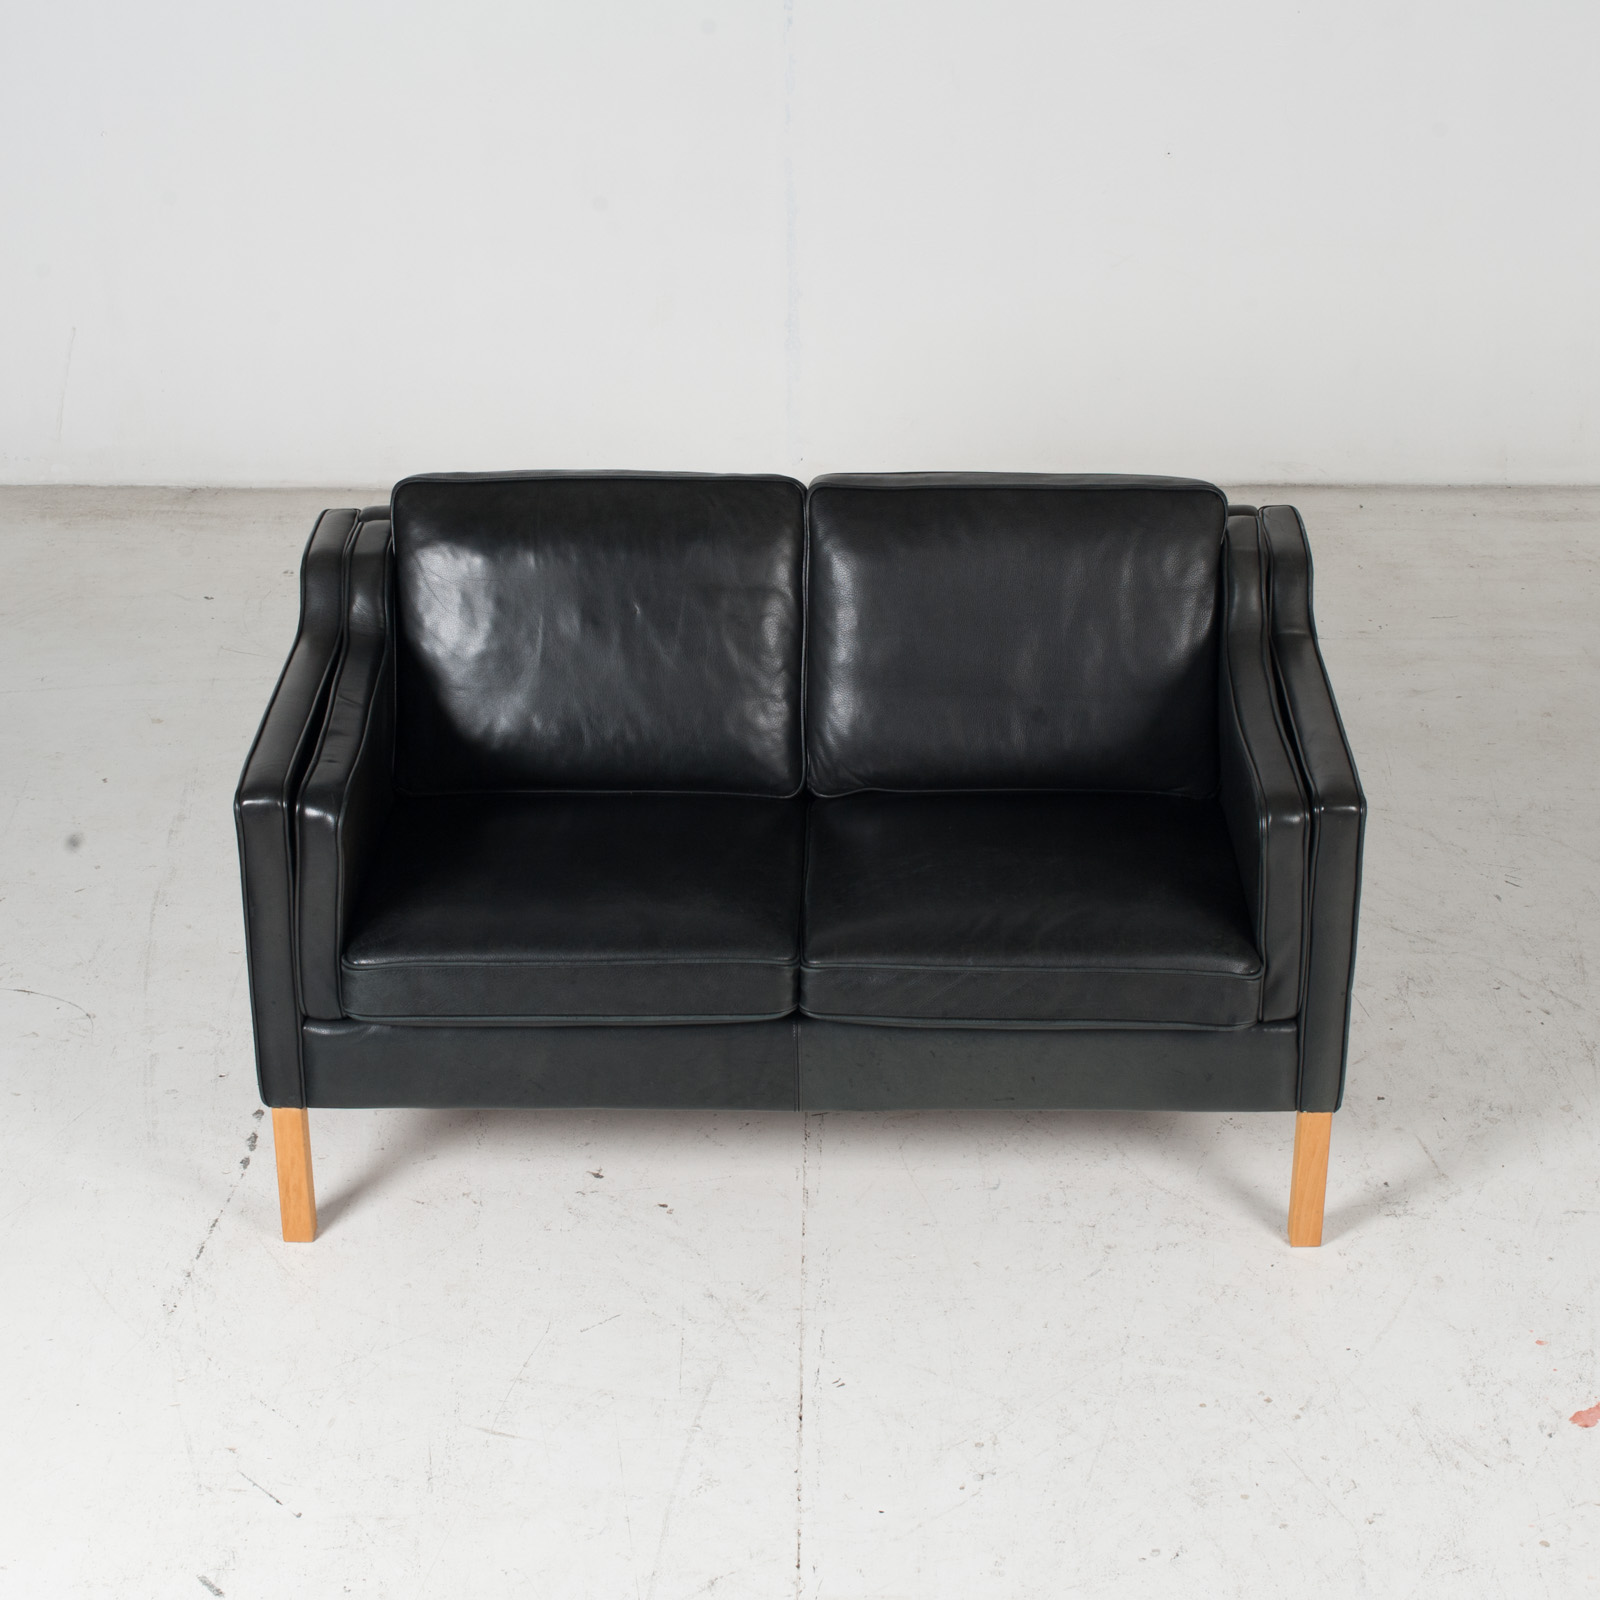 2 Seat Sofa By Stouby In Black Leather, 1960s, Denmark 3